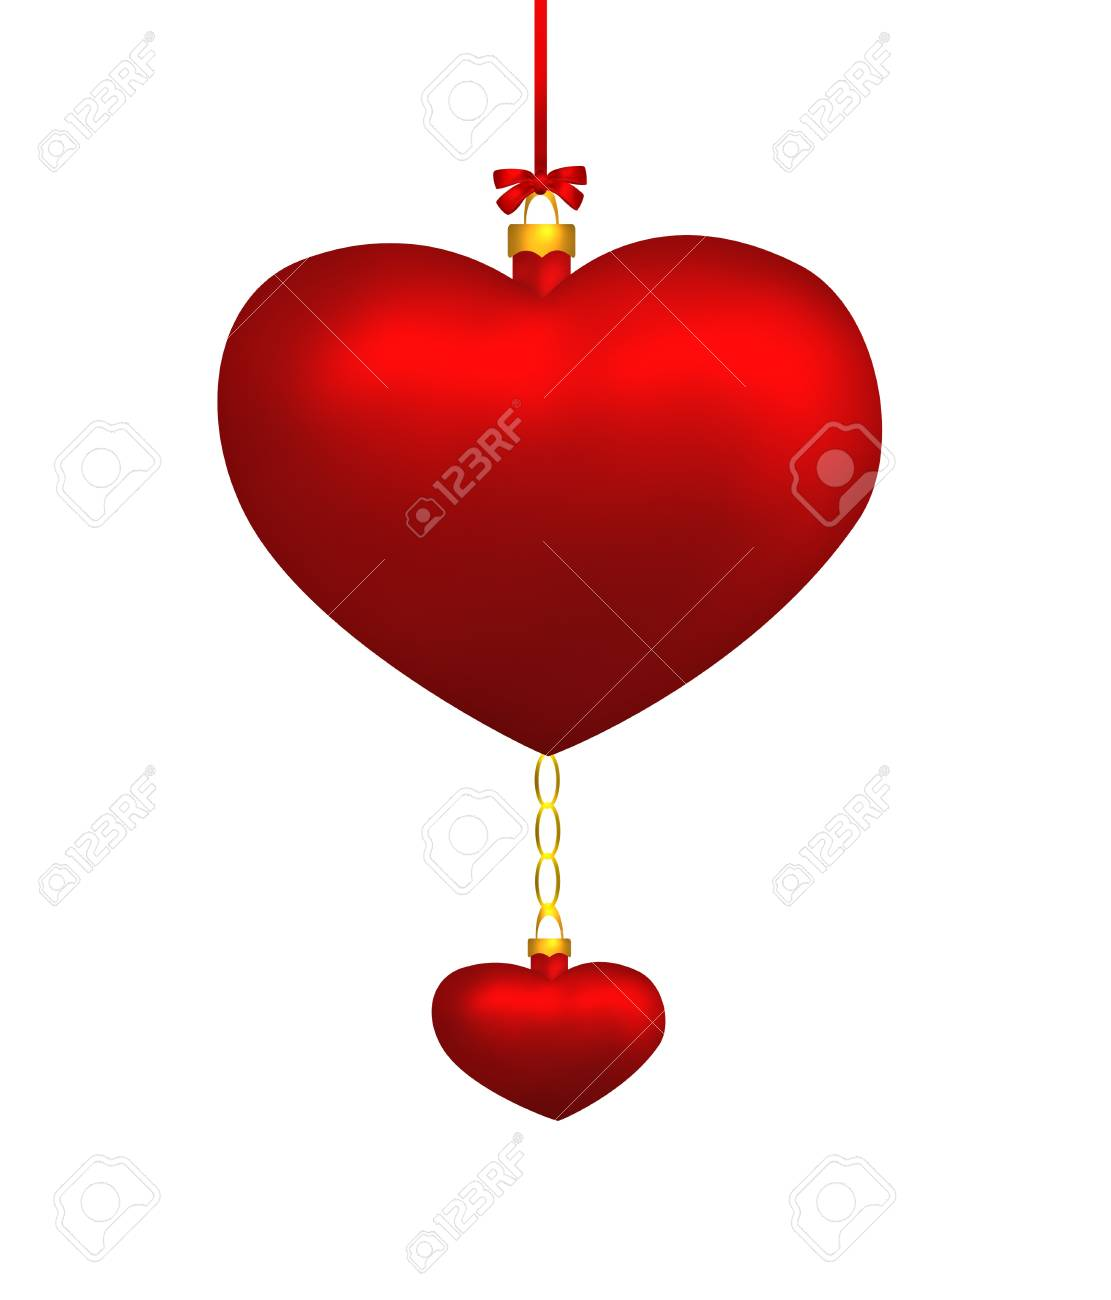 Two red hearts hanging isolated on white background  Illustration Stock Photo - 16978052